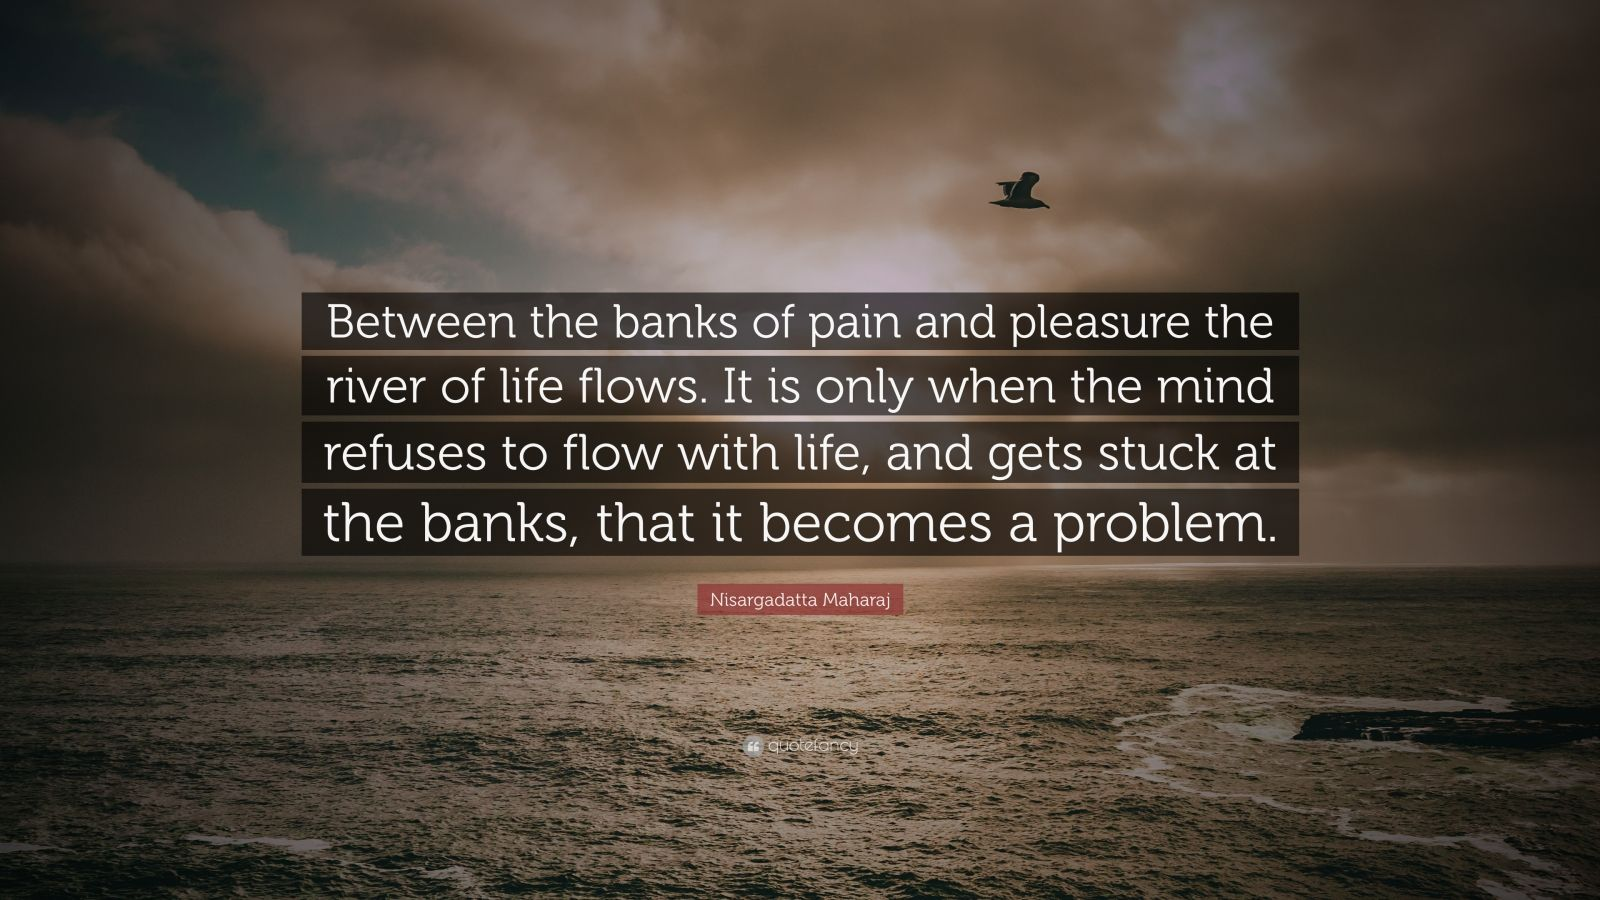 """Nisargadatta Maharaj Quote: """"Between the banks of pain and pleasure the river of life flows. It is only when the mind refuses to flow with life, and gets stuck at the banks, that it becomes a problem."""""""